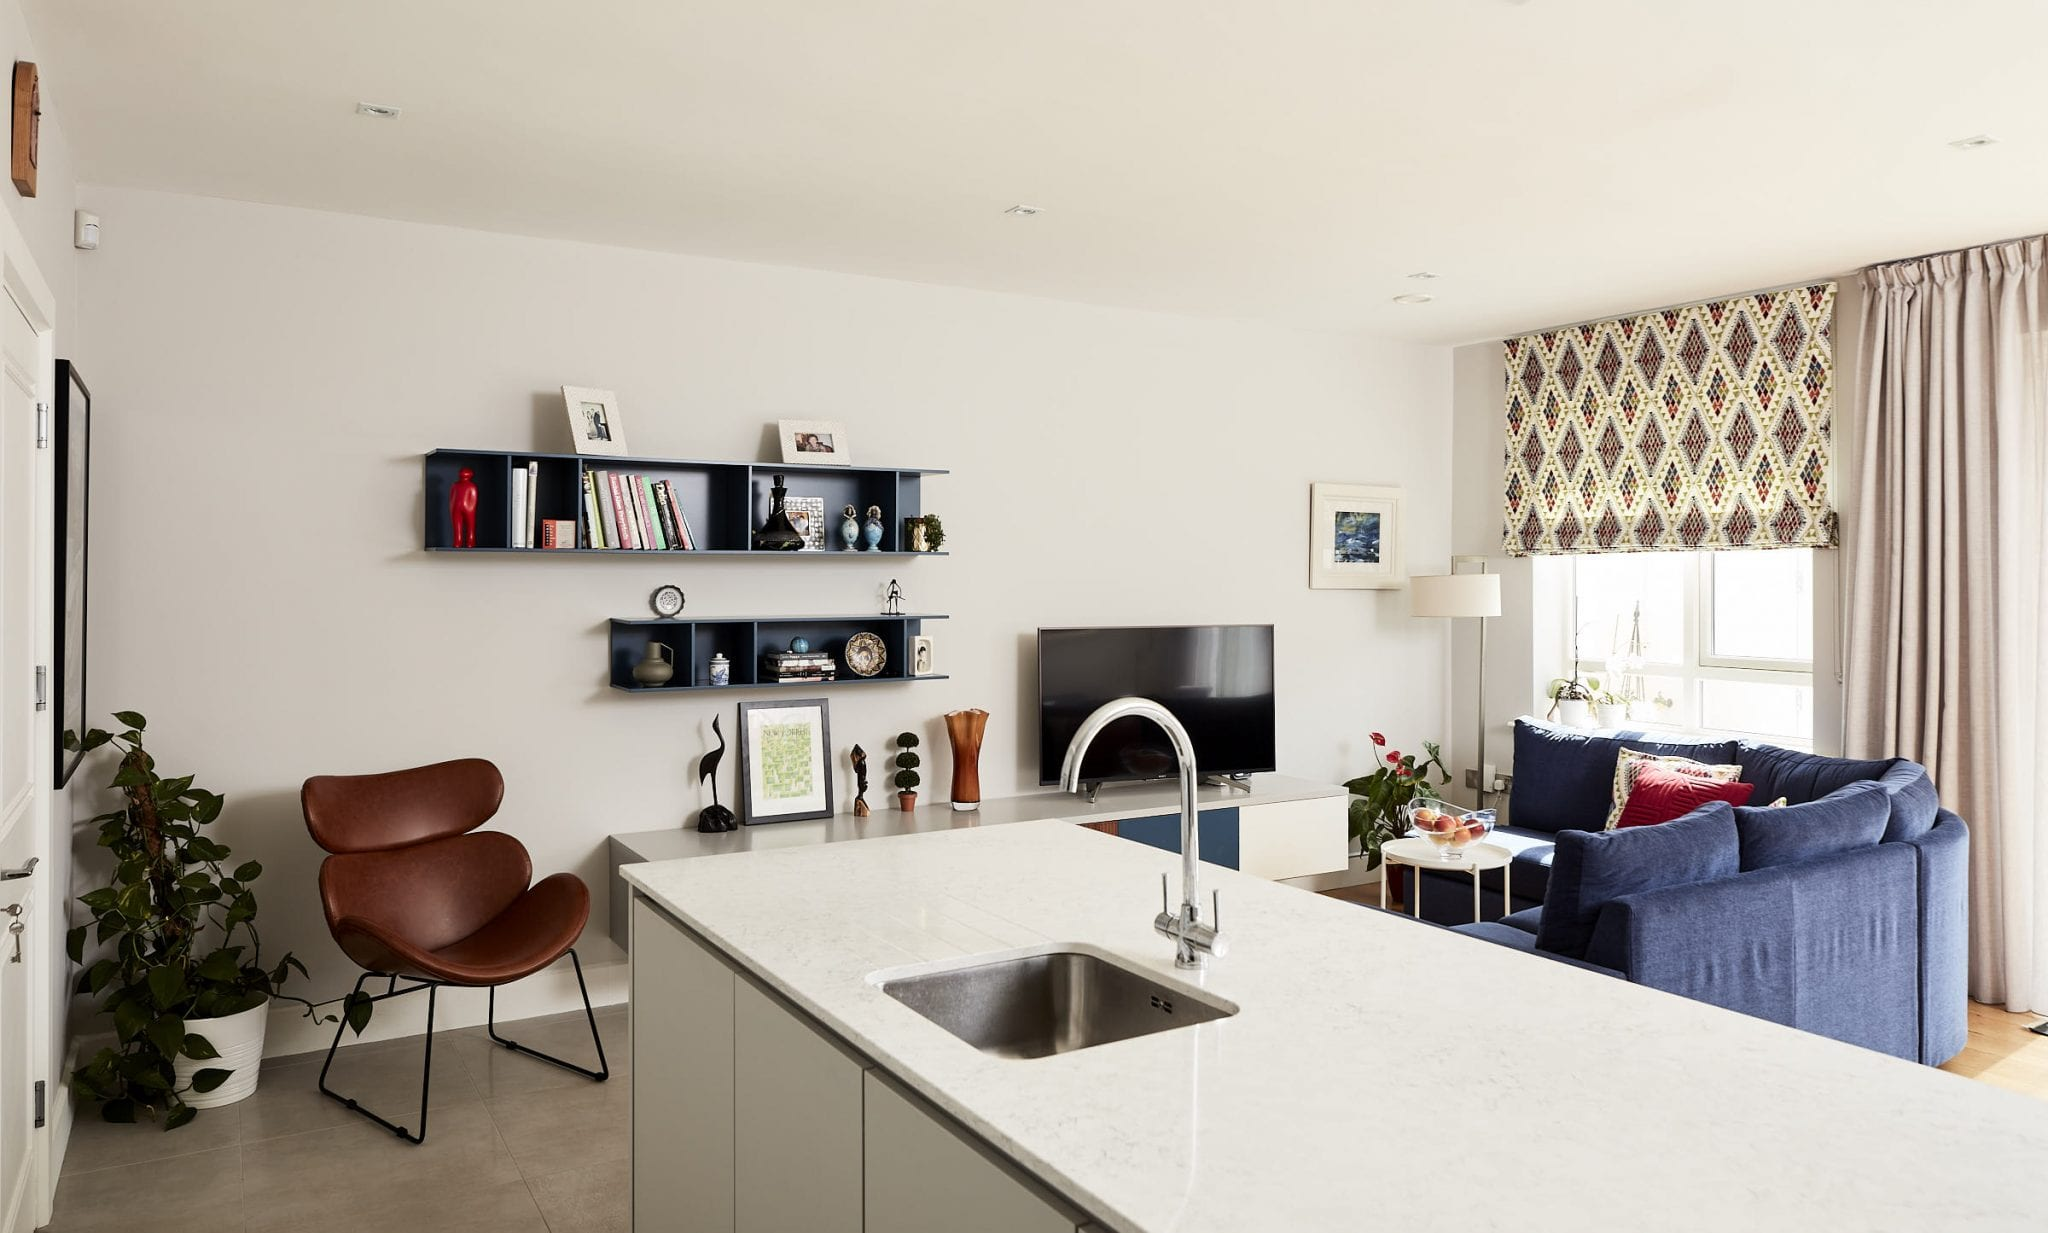 Area designated within the kitchen for tv viewing for a Dublin 3 interior design job.